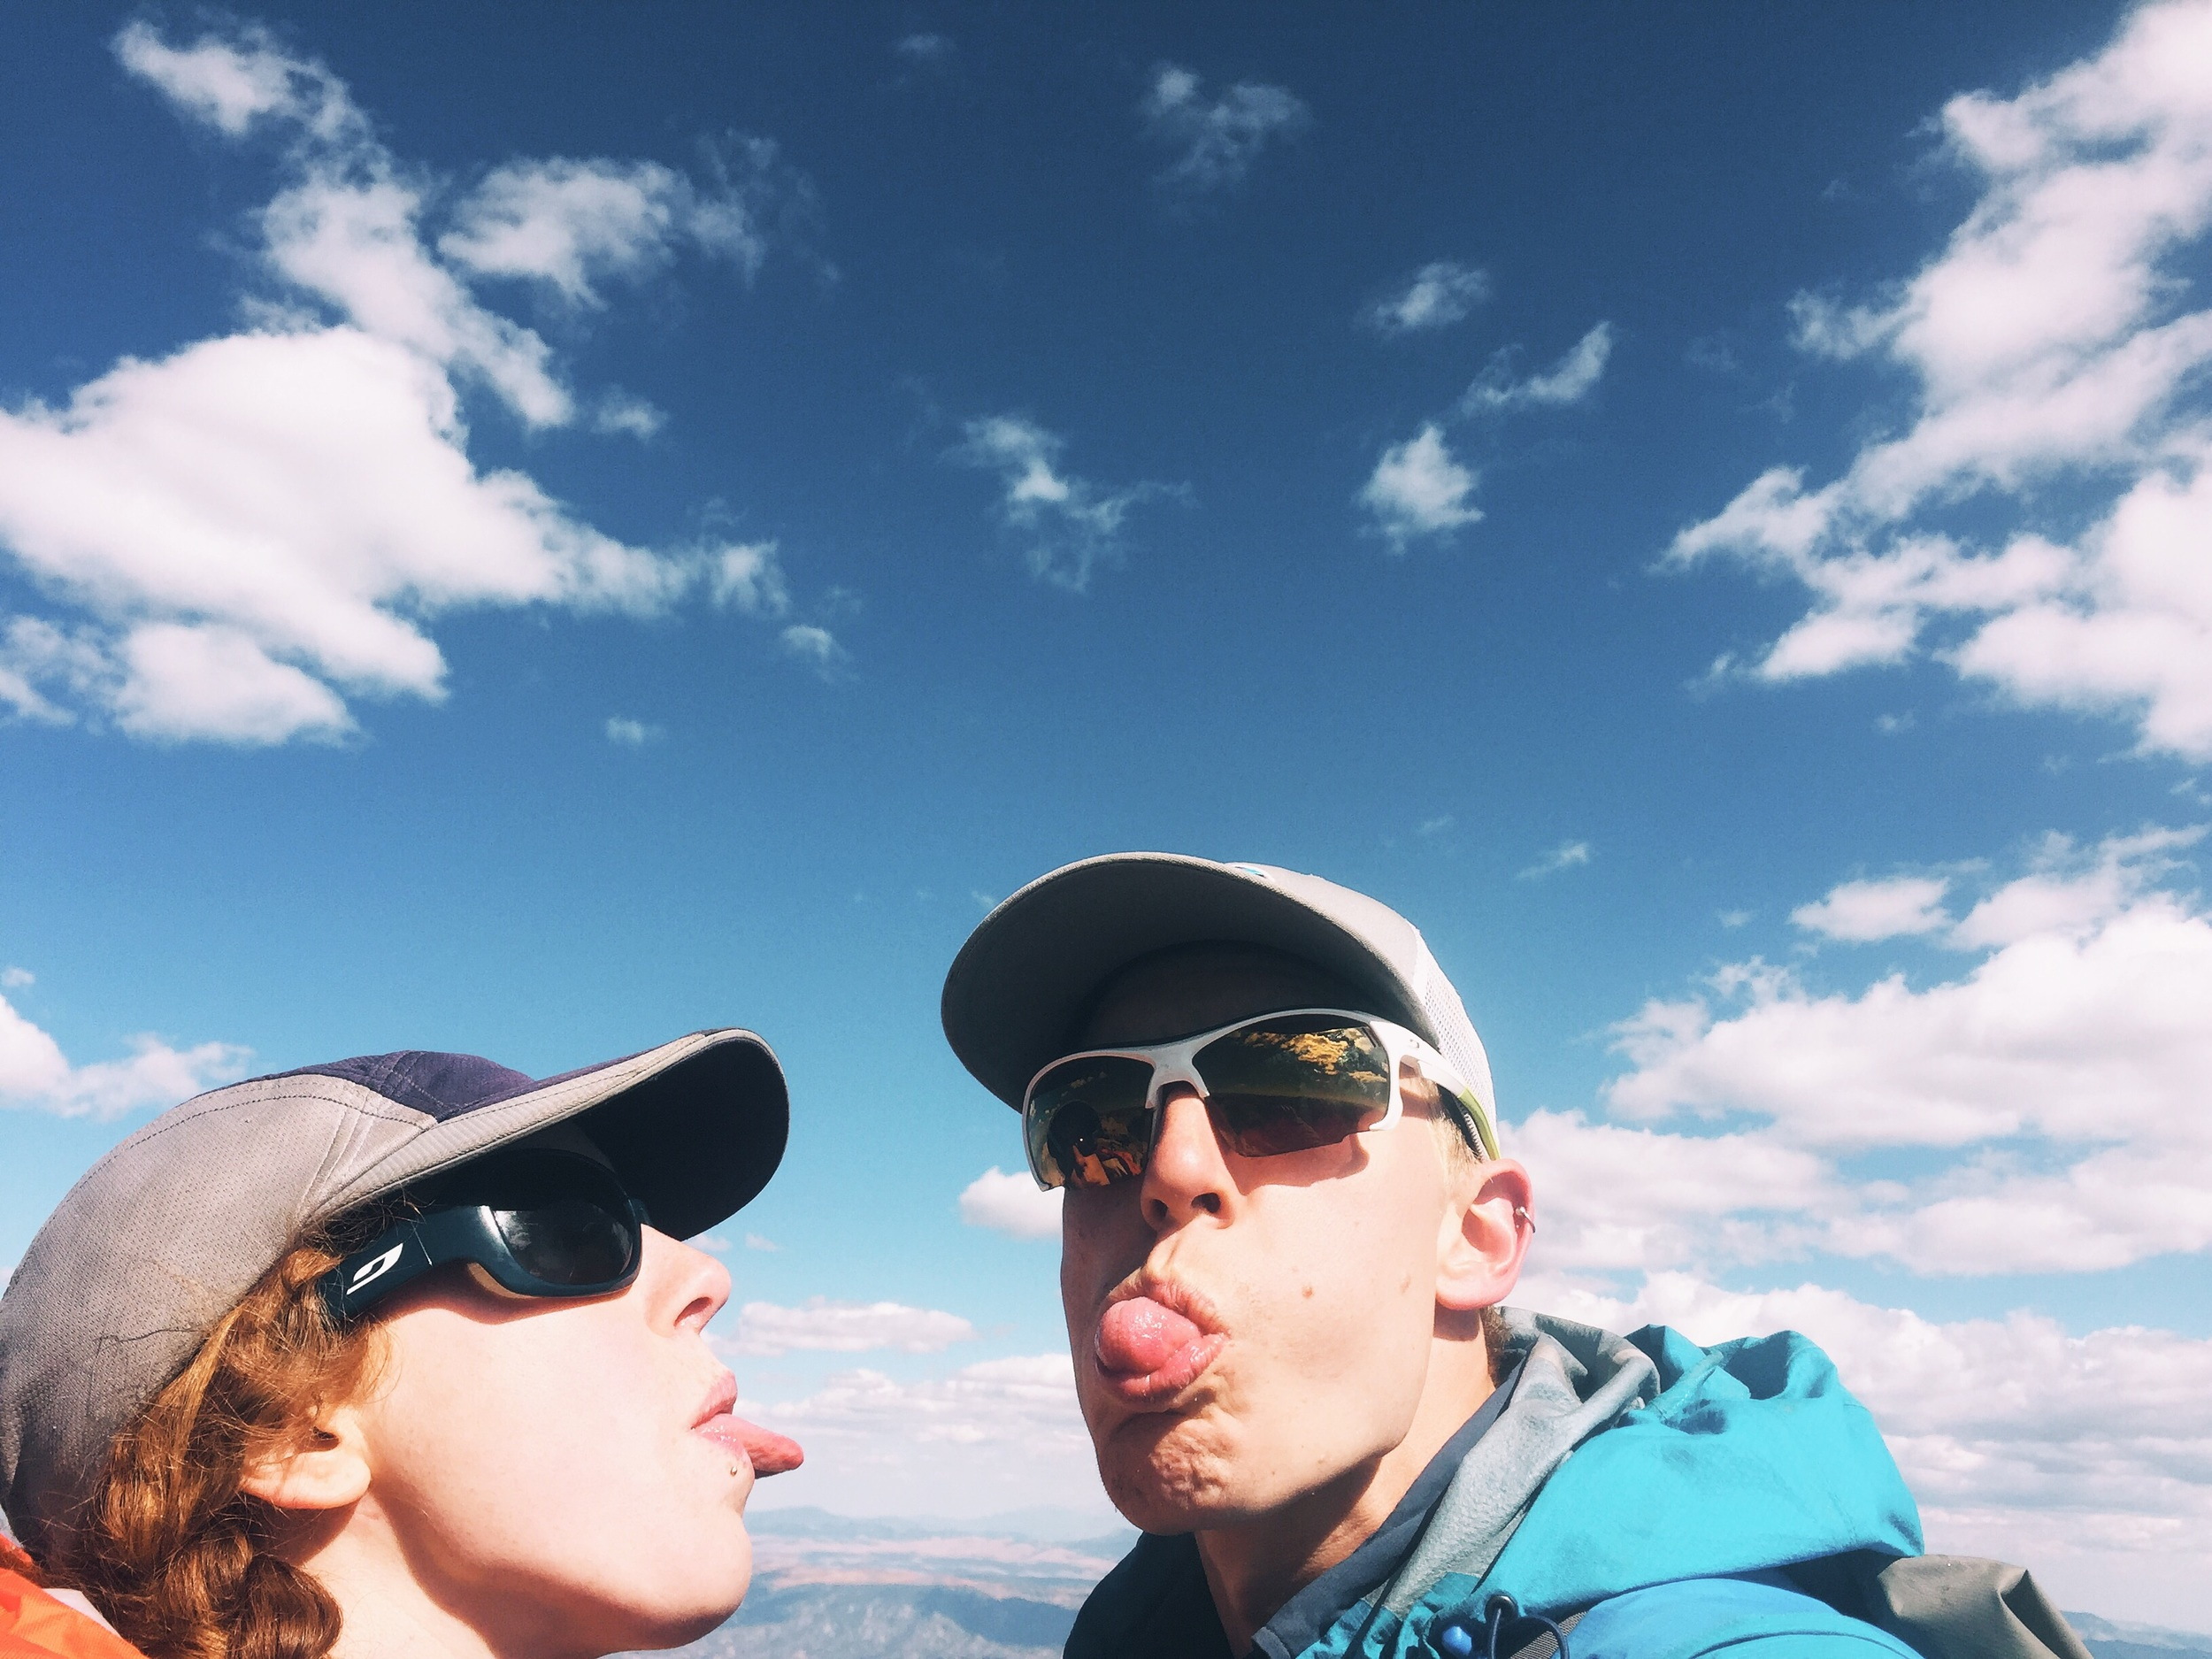 Things got a little silly on the Summit of Shavano